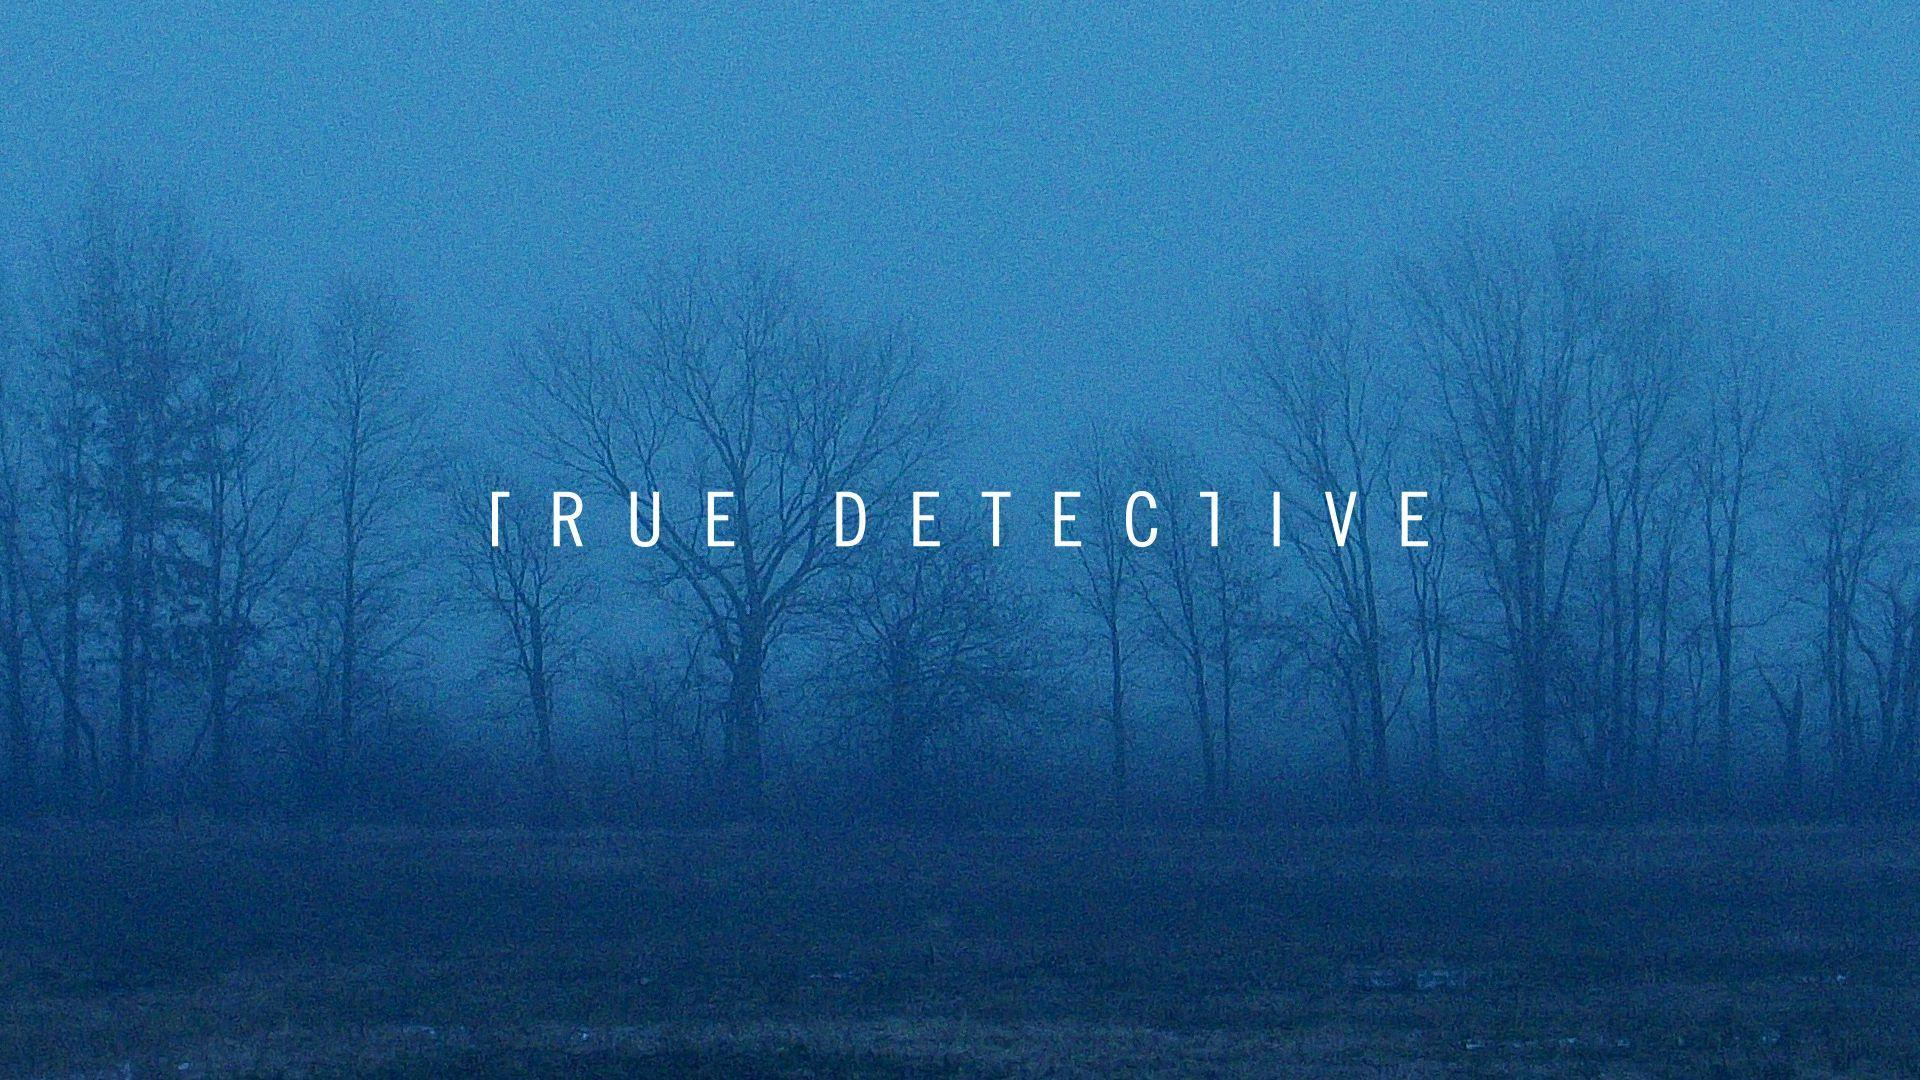 True Detective Trees Wallpapers by HD Wallpapers Daily